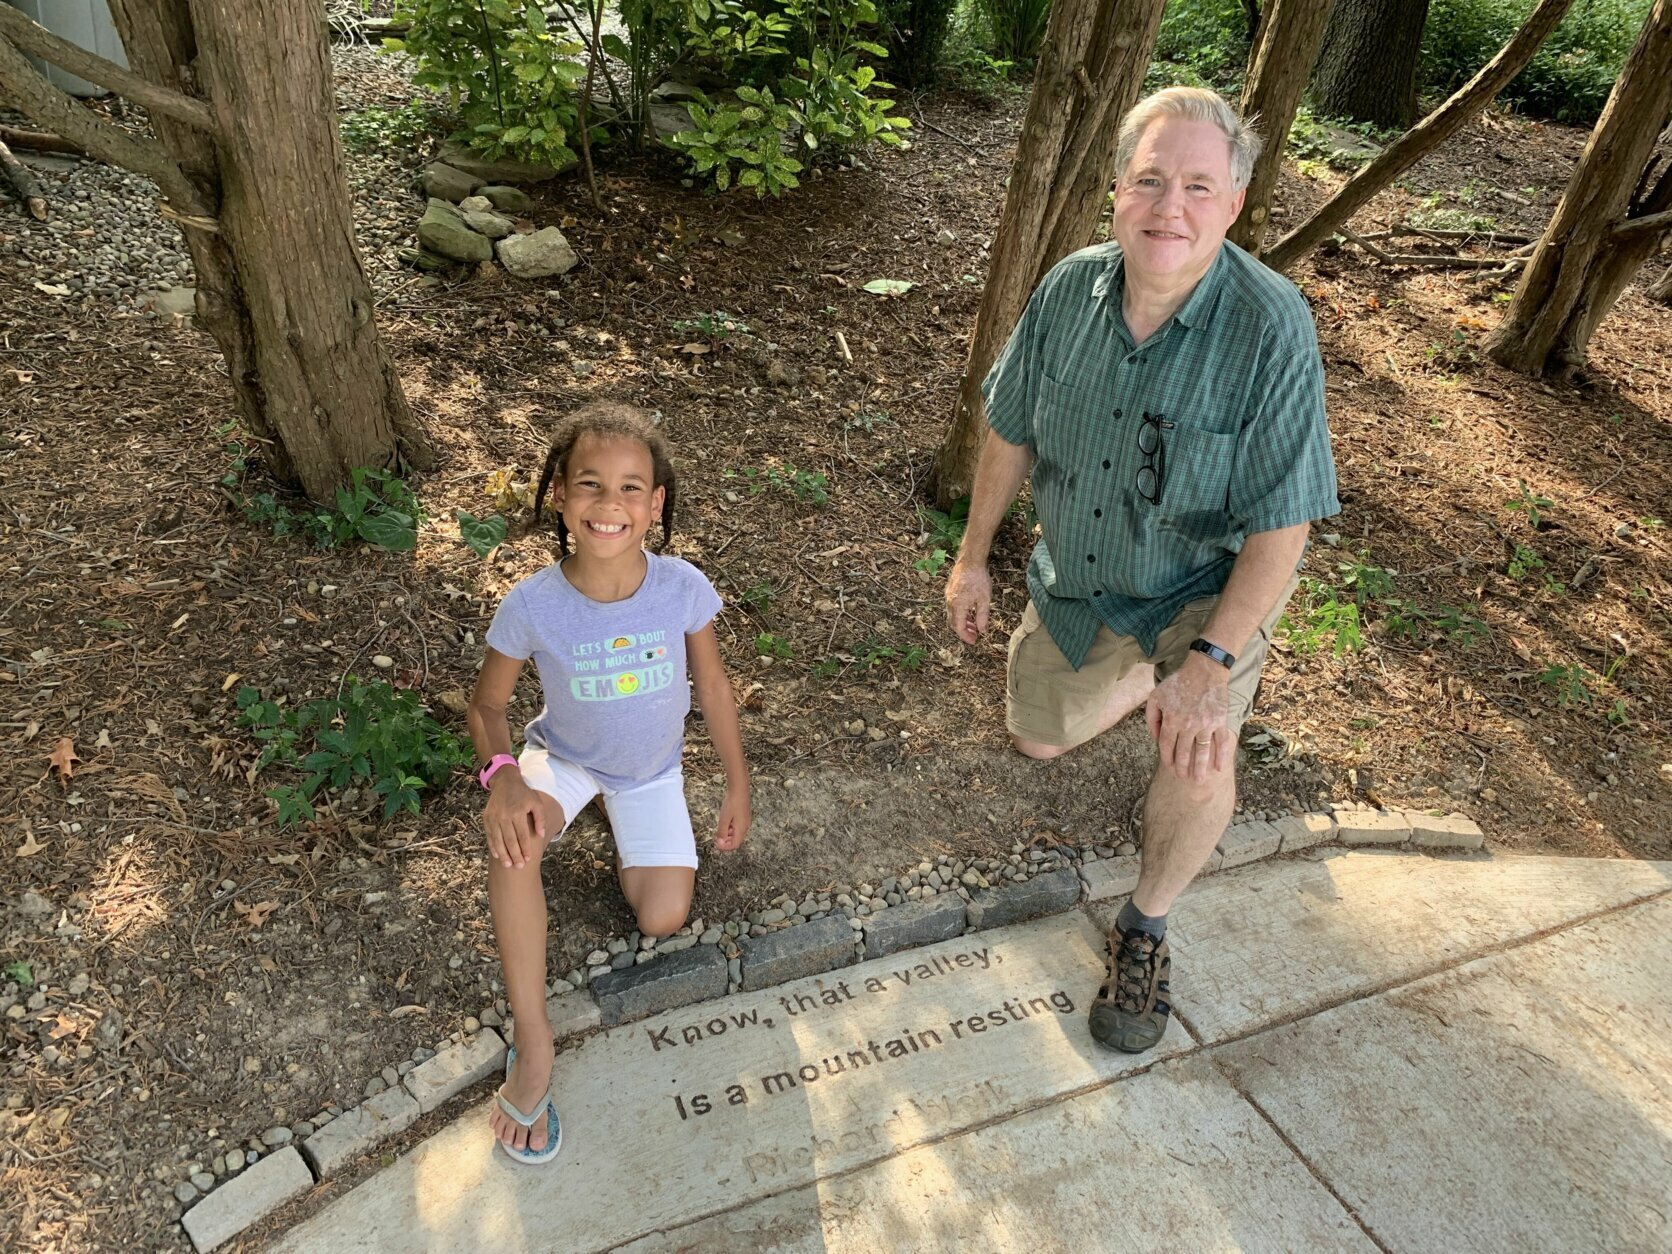 Richard Weil kneels beside the lyrics to a song he wrote, which is now etched on a sidewalk in Takoma Park, Md.